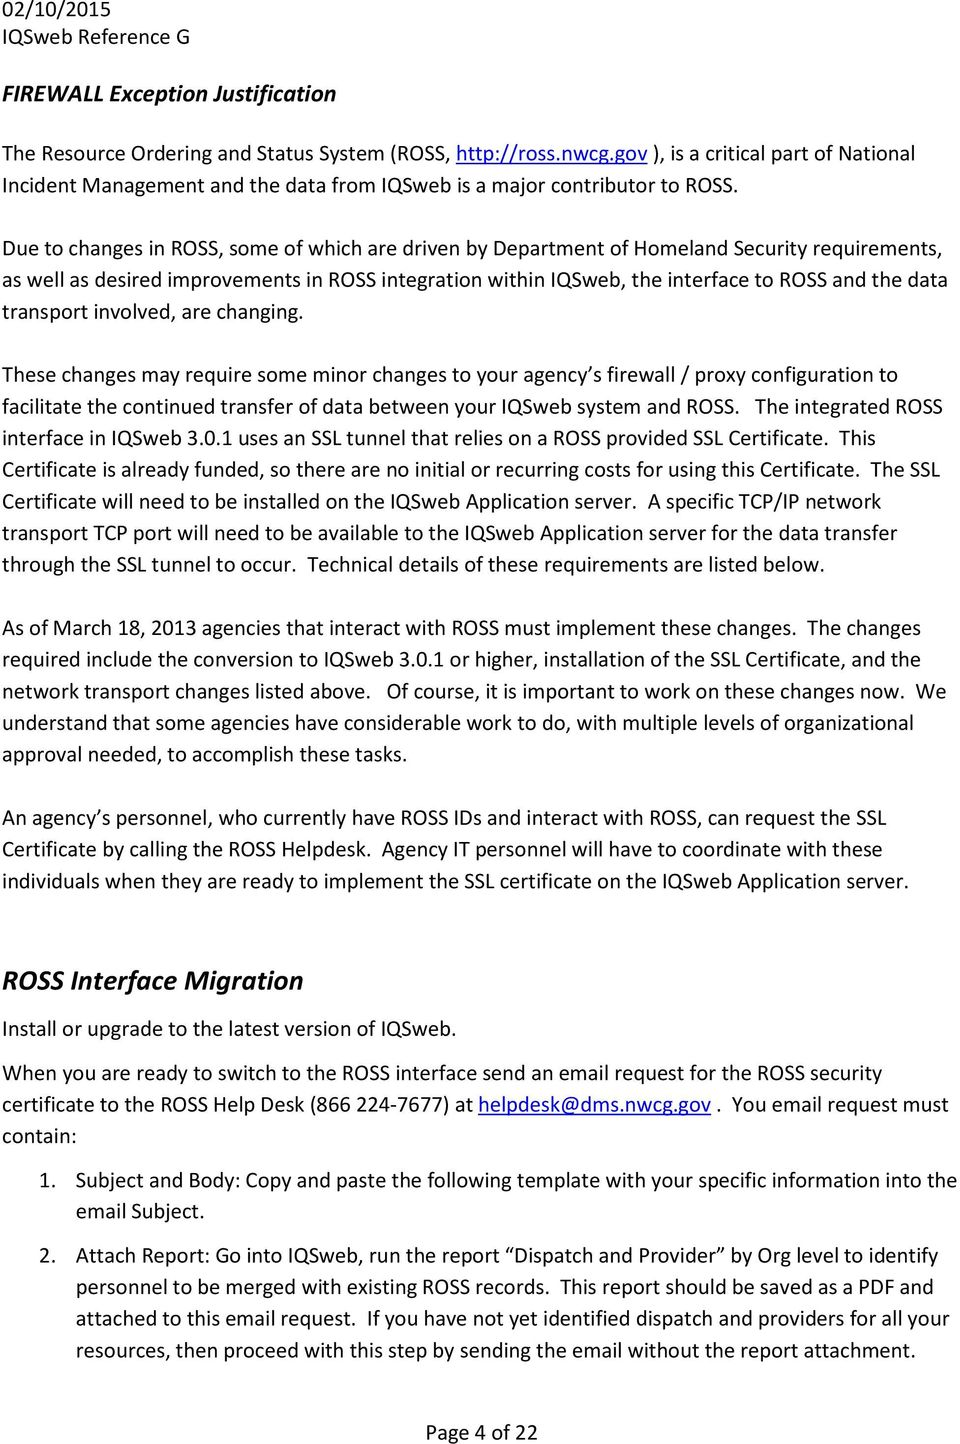 Due to changes in ROSS, some of which are driven by Department of Homeland Security requirements, as well as desired improvements in ROSS integration within IQSweb, the interface to ROSS and the data